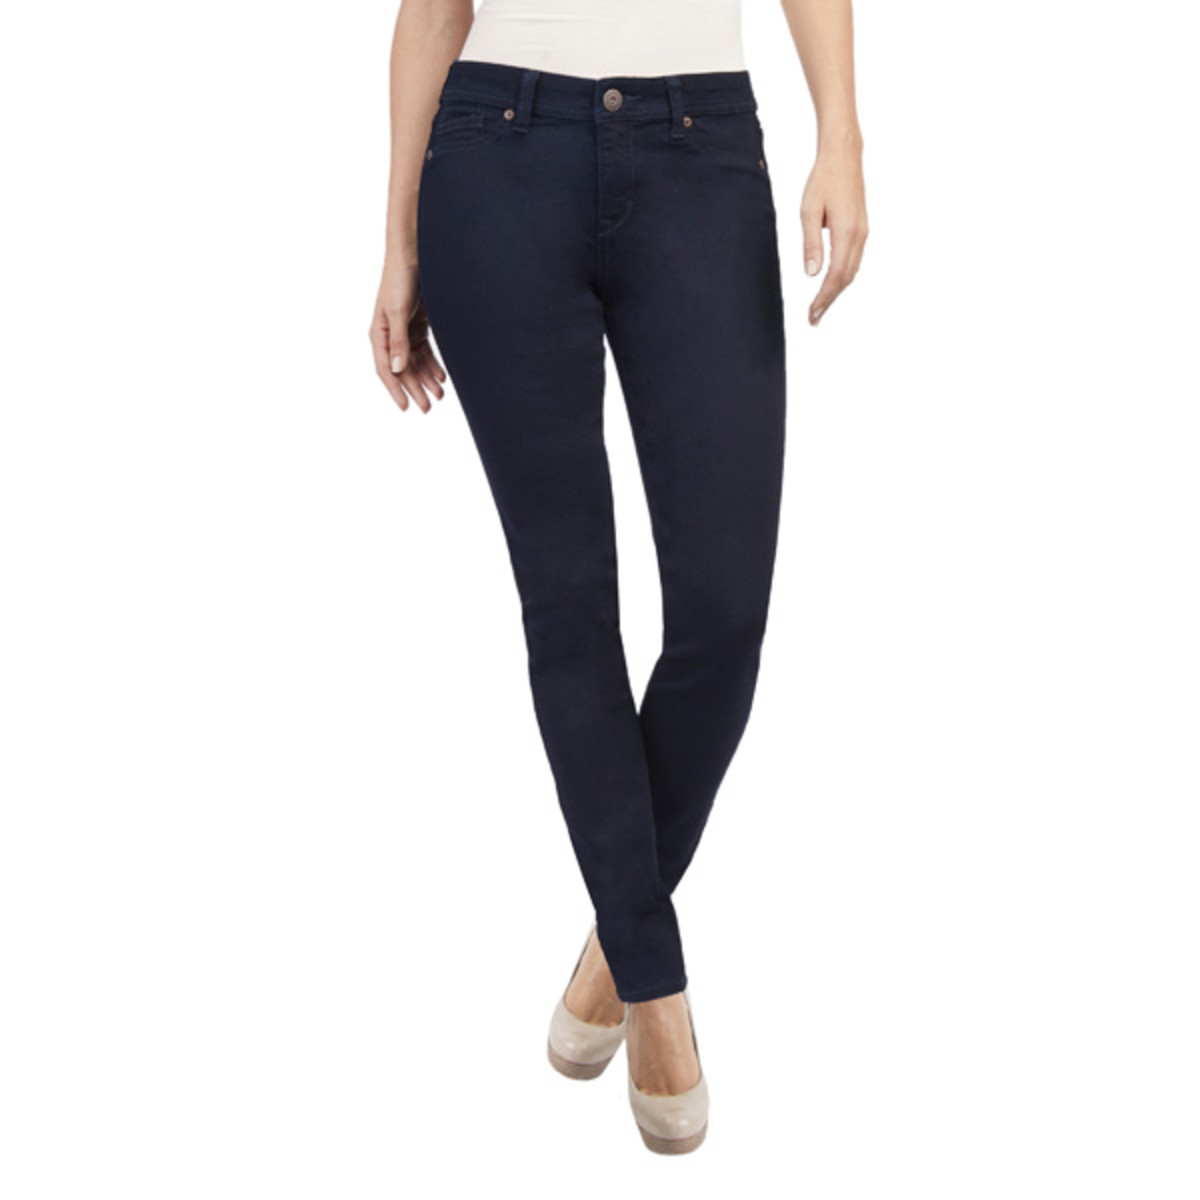 Jordache: Mommy and Me Jeans Giveaway - MomTrendsMomTrends